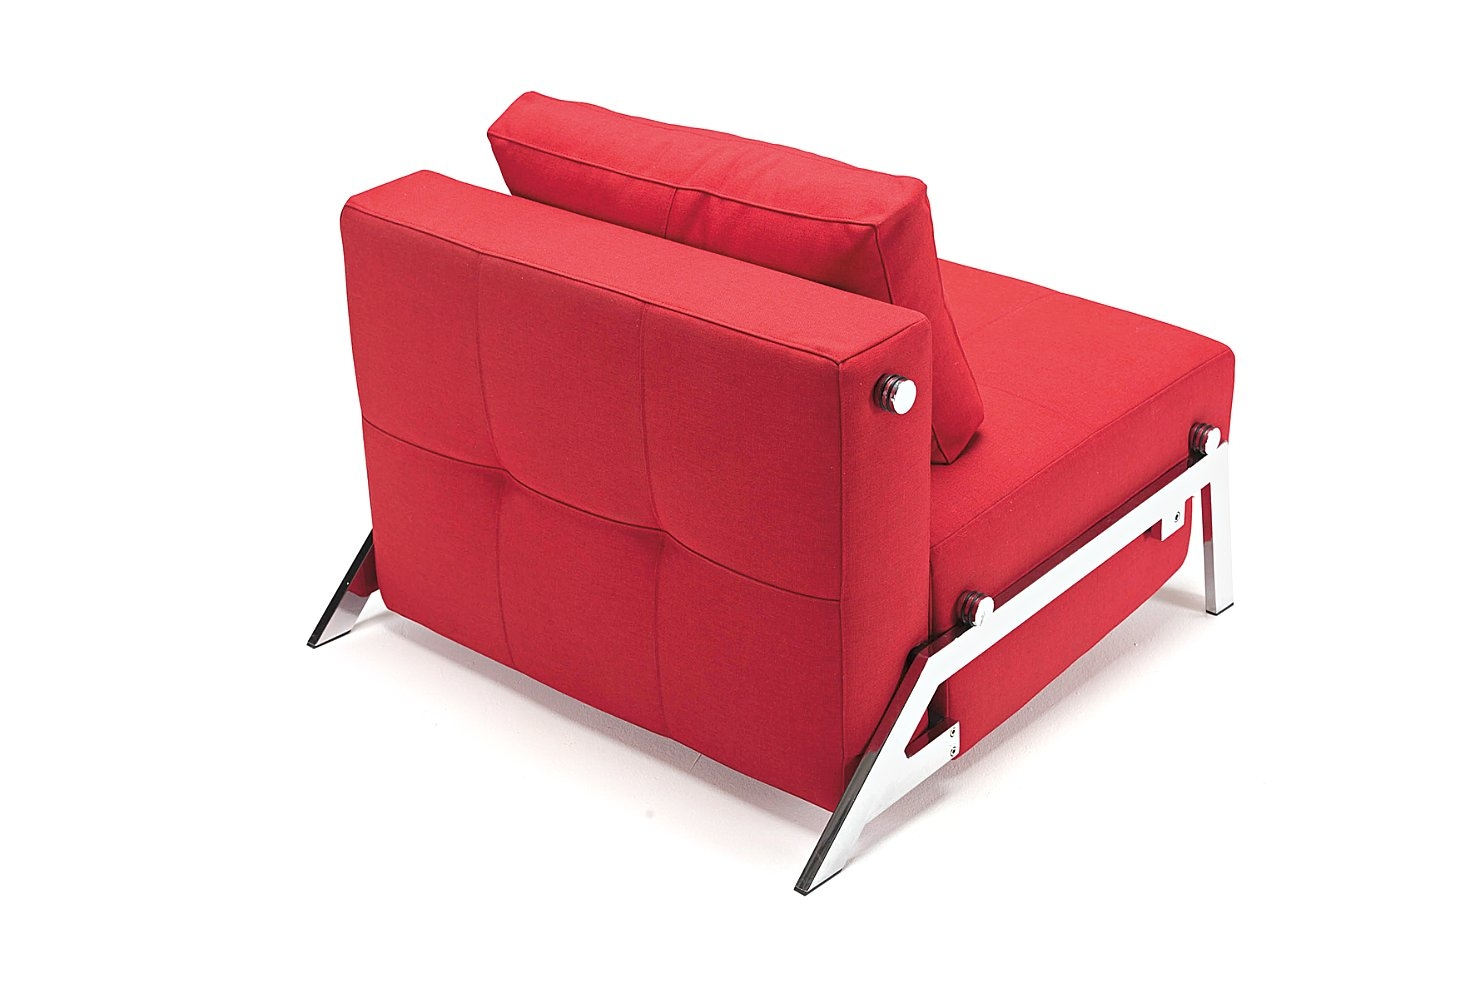 Sofas Center Single Chair Sofa Beds Model Ideas With Memory With Regard To Single Chair Sofa Bed (Image 15 of 15)